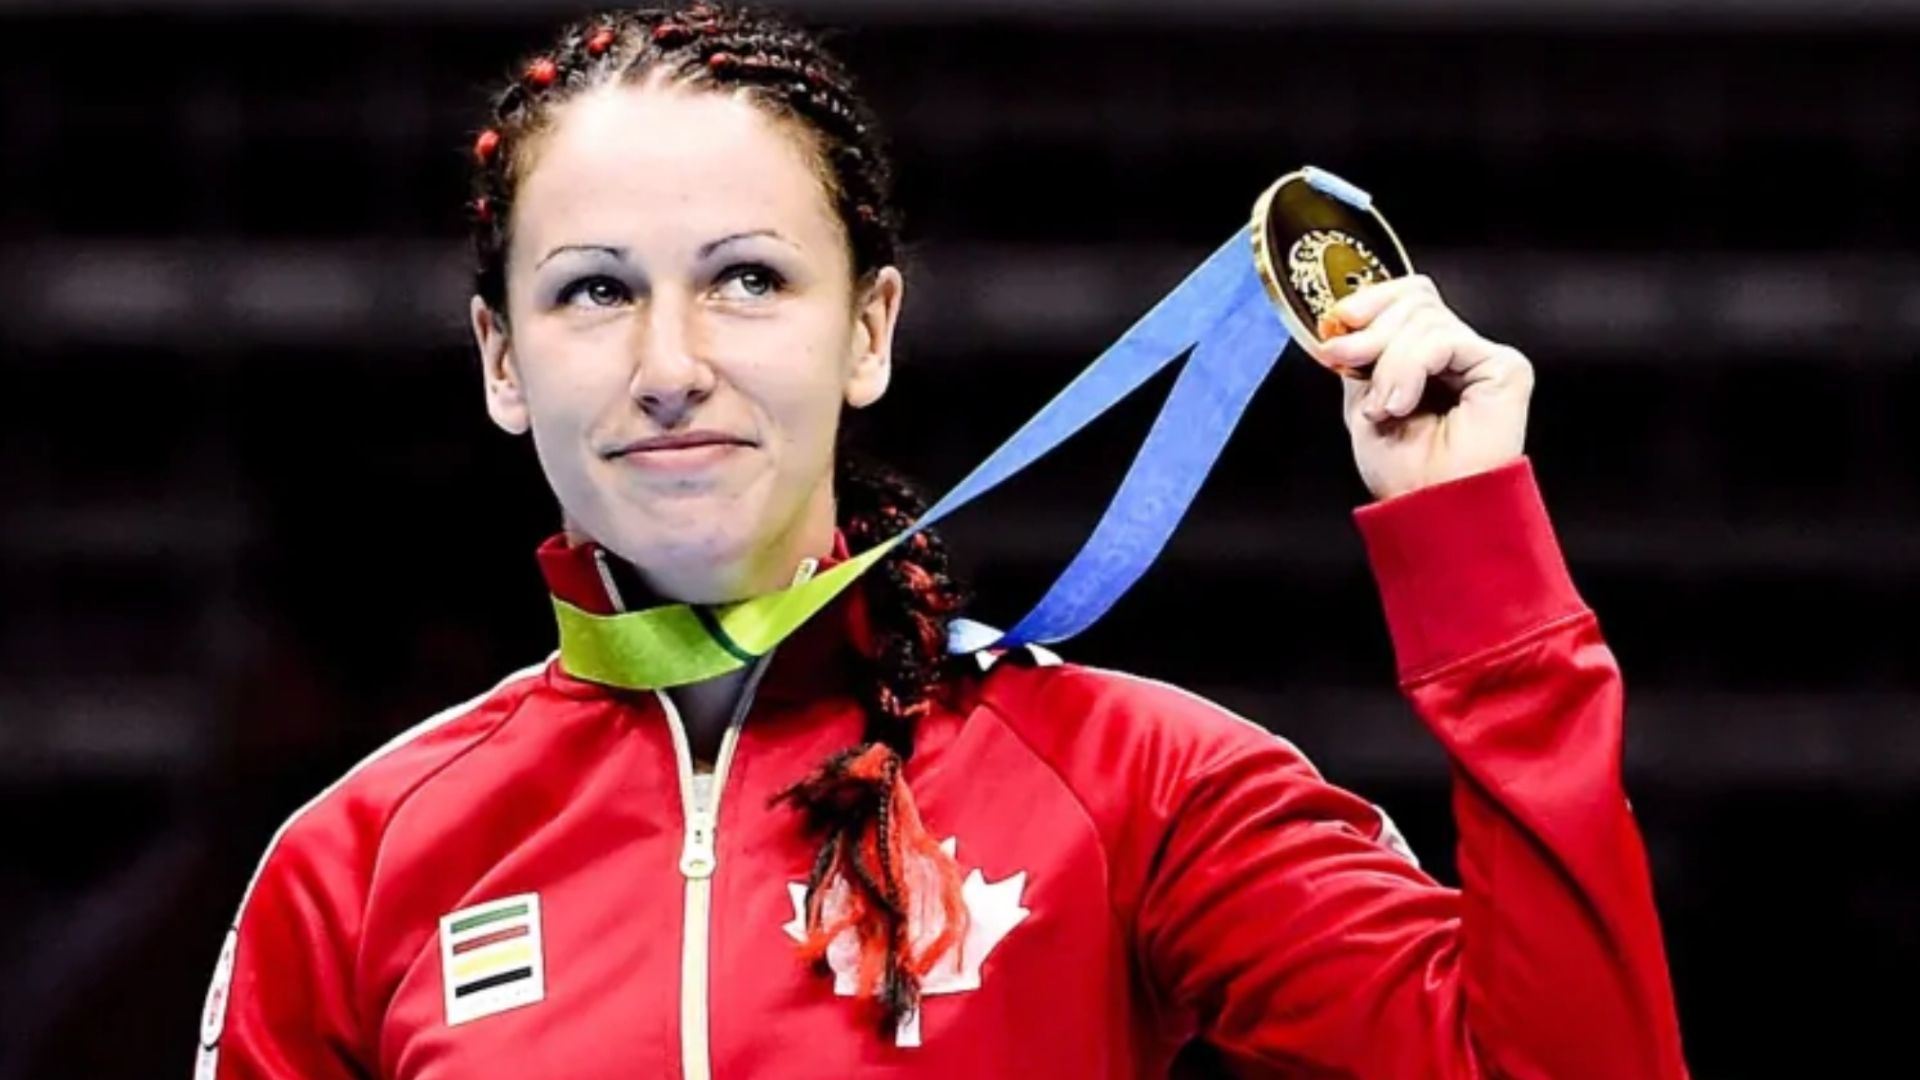 Dionne with Medal